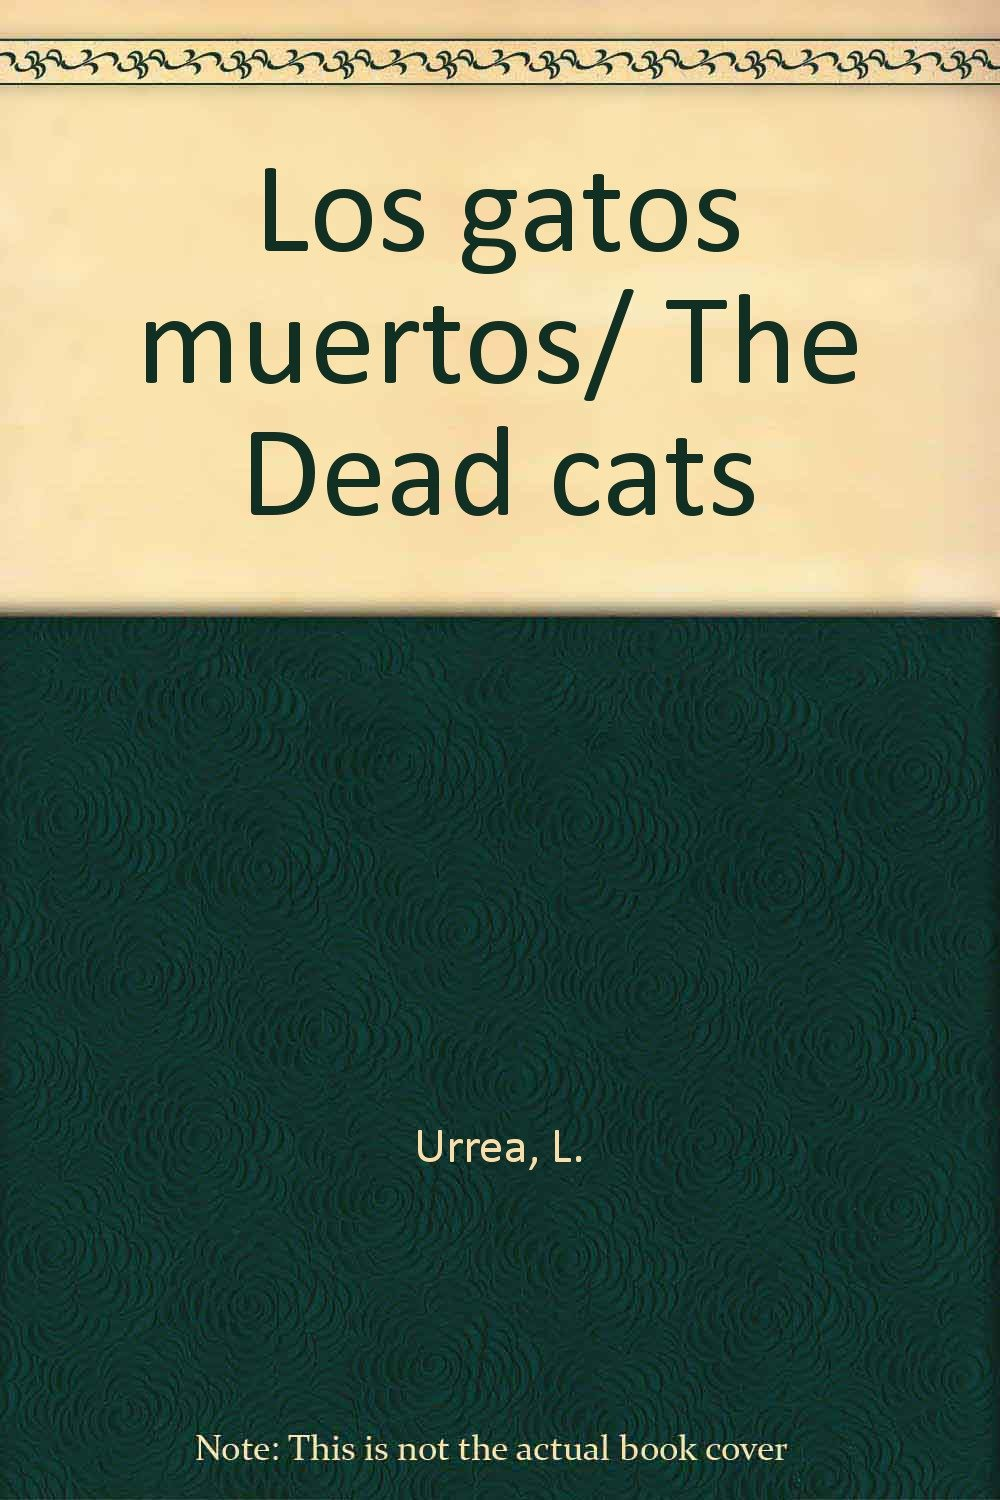 Los gatos muertos/The Dead cats (Spanish Edition) (Spanish) Paperback – November 1, 2002